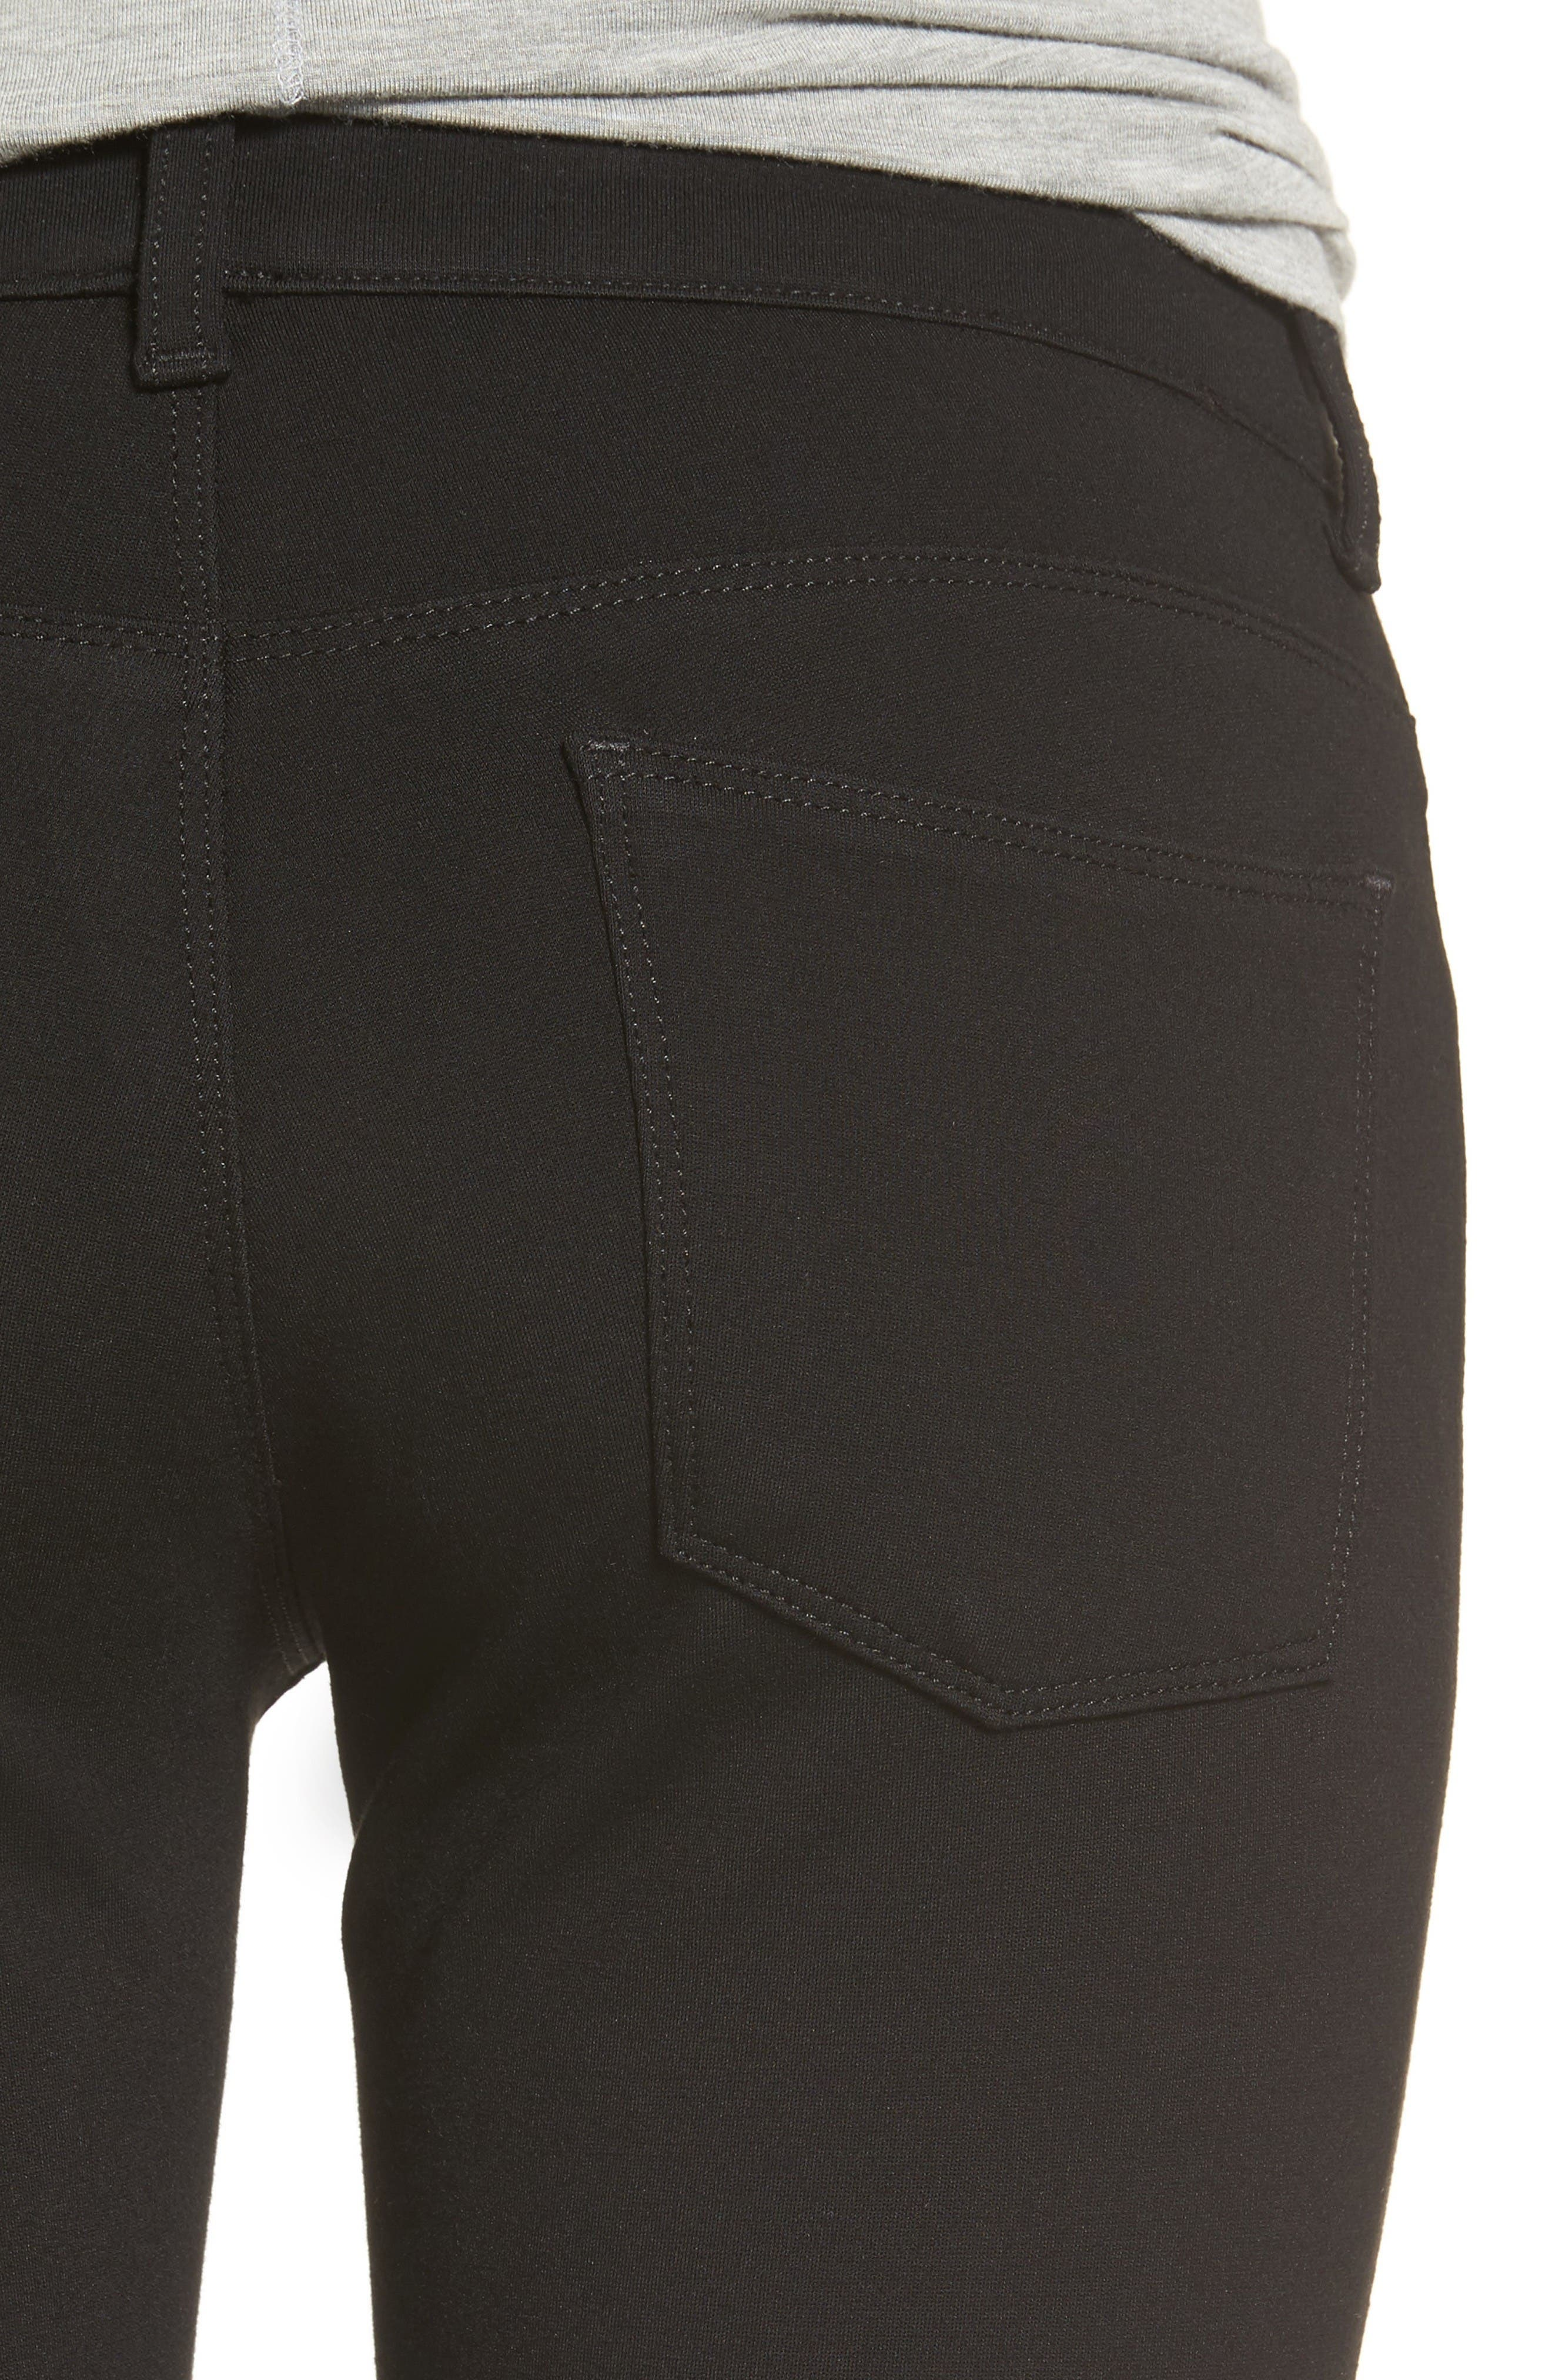 Alternate Image 4  - KUT from the Kloth Donna Ponte Knit Skinny Jeans (Regular & Petite)